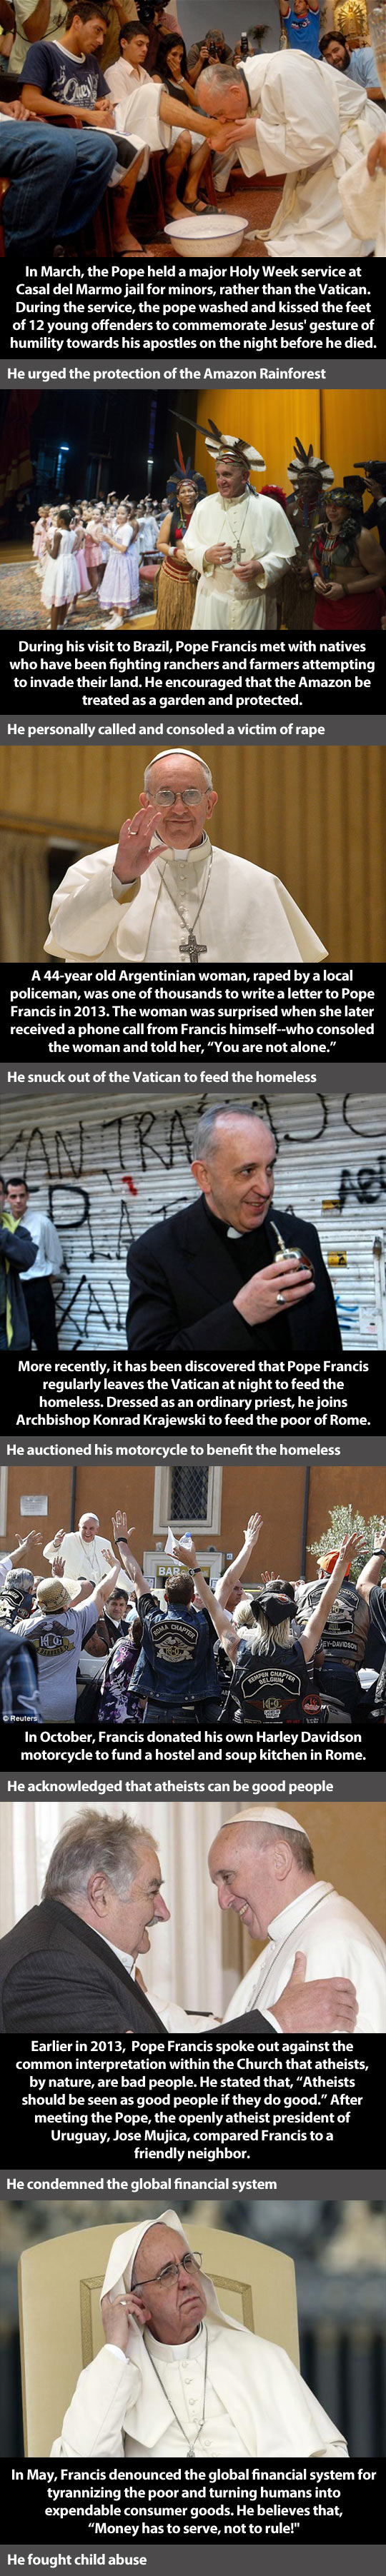 cool-Pope-Francis-person-year-prison-humility